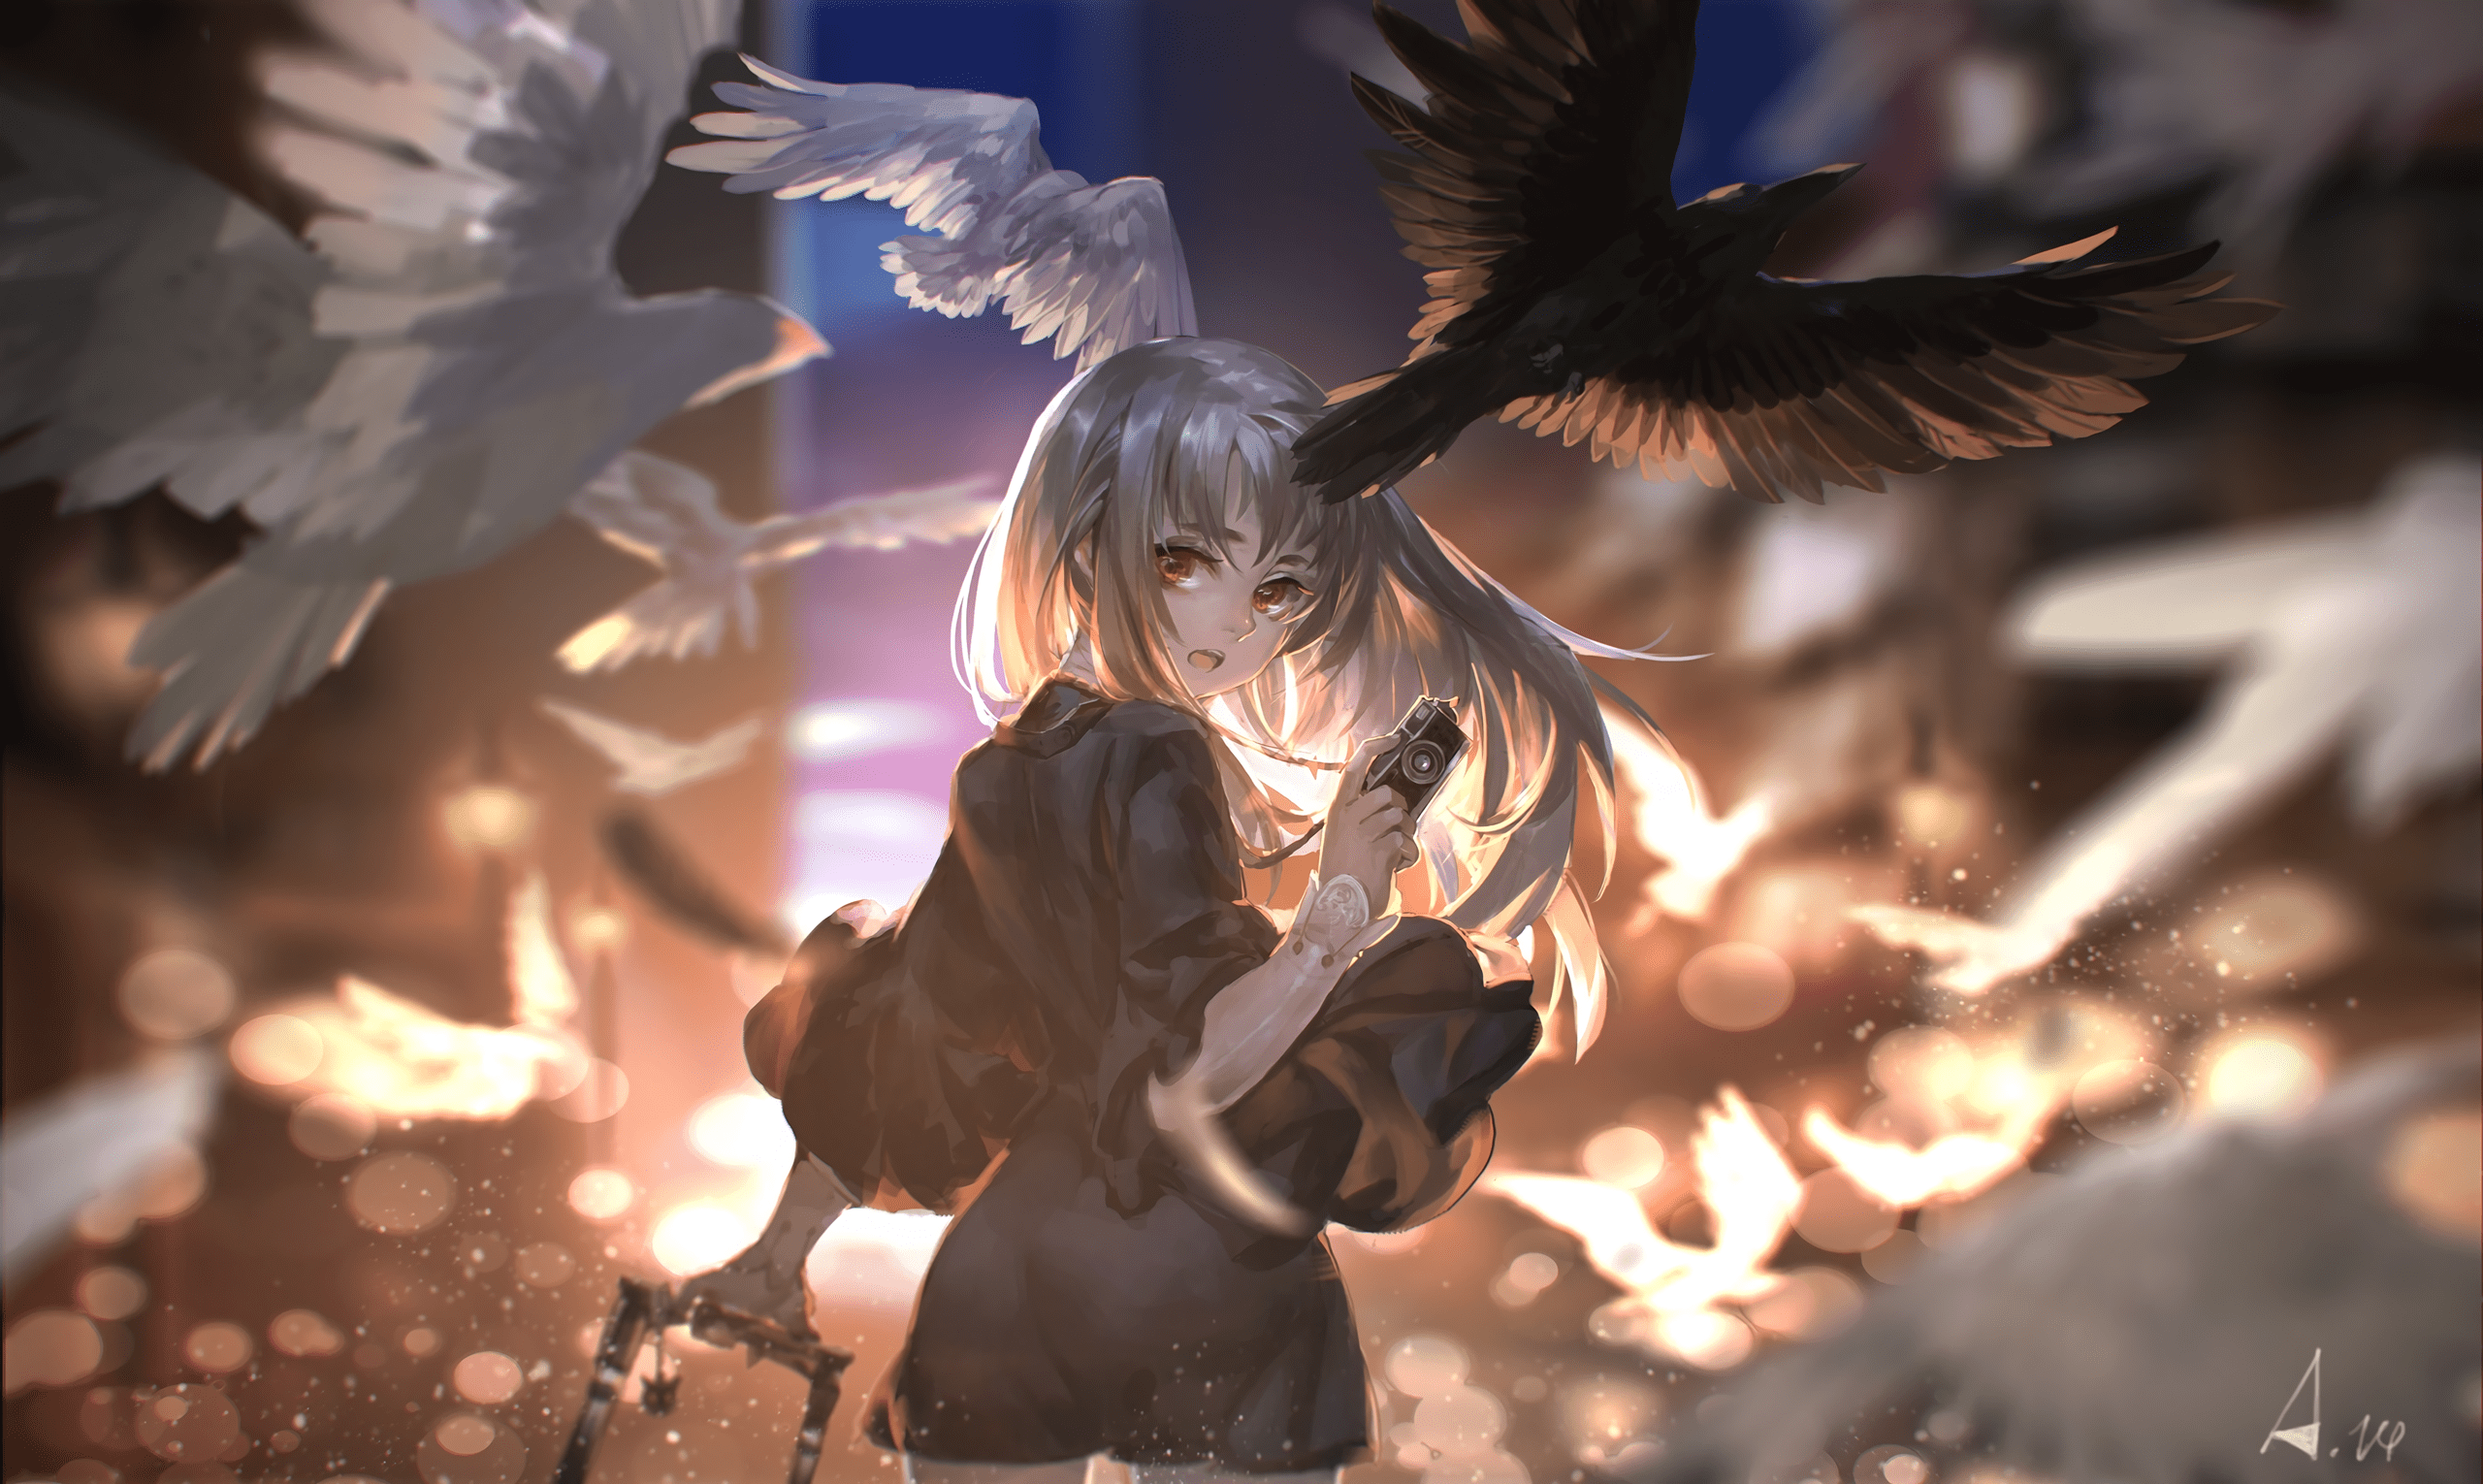 Dream Girl Wallpaper Hd Pixiv Fantasia Fallen Kings Wallpapers Pictures Images